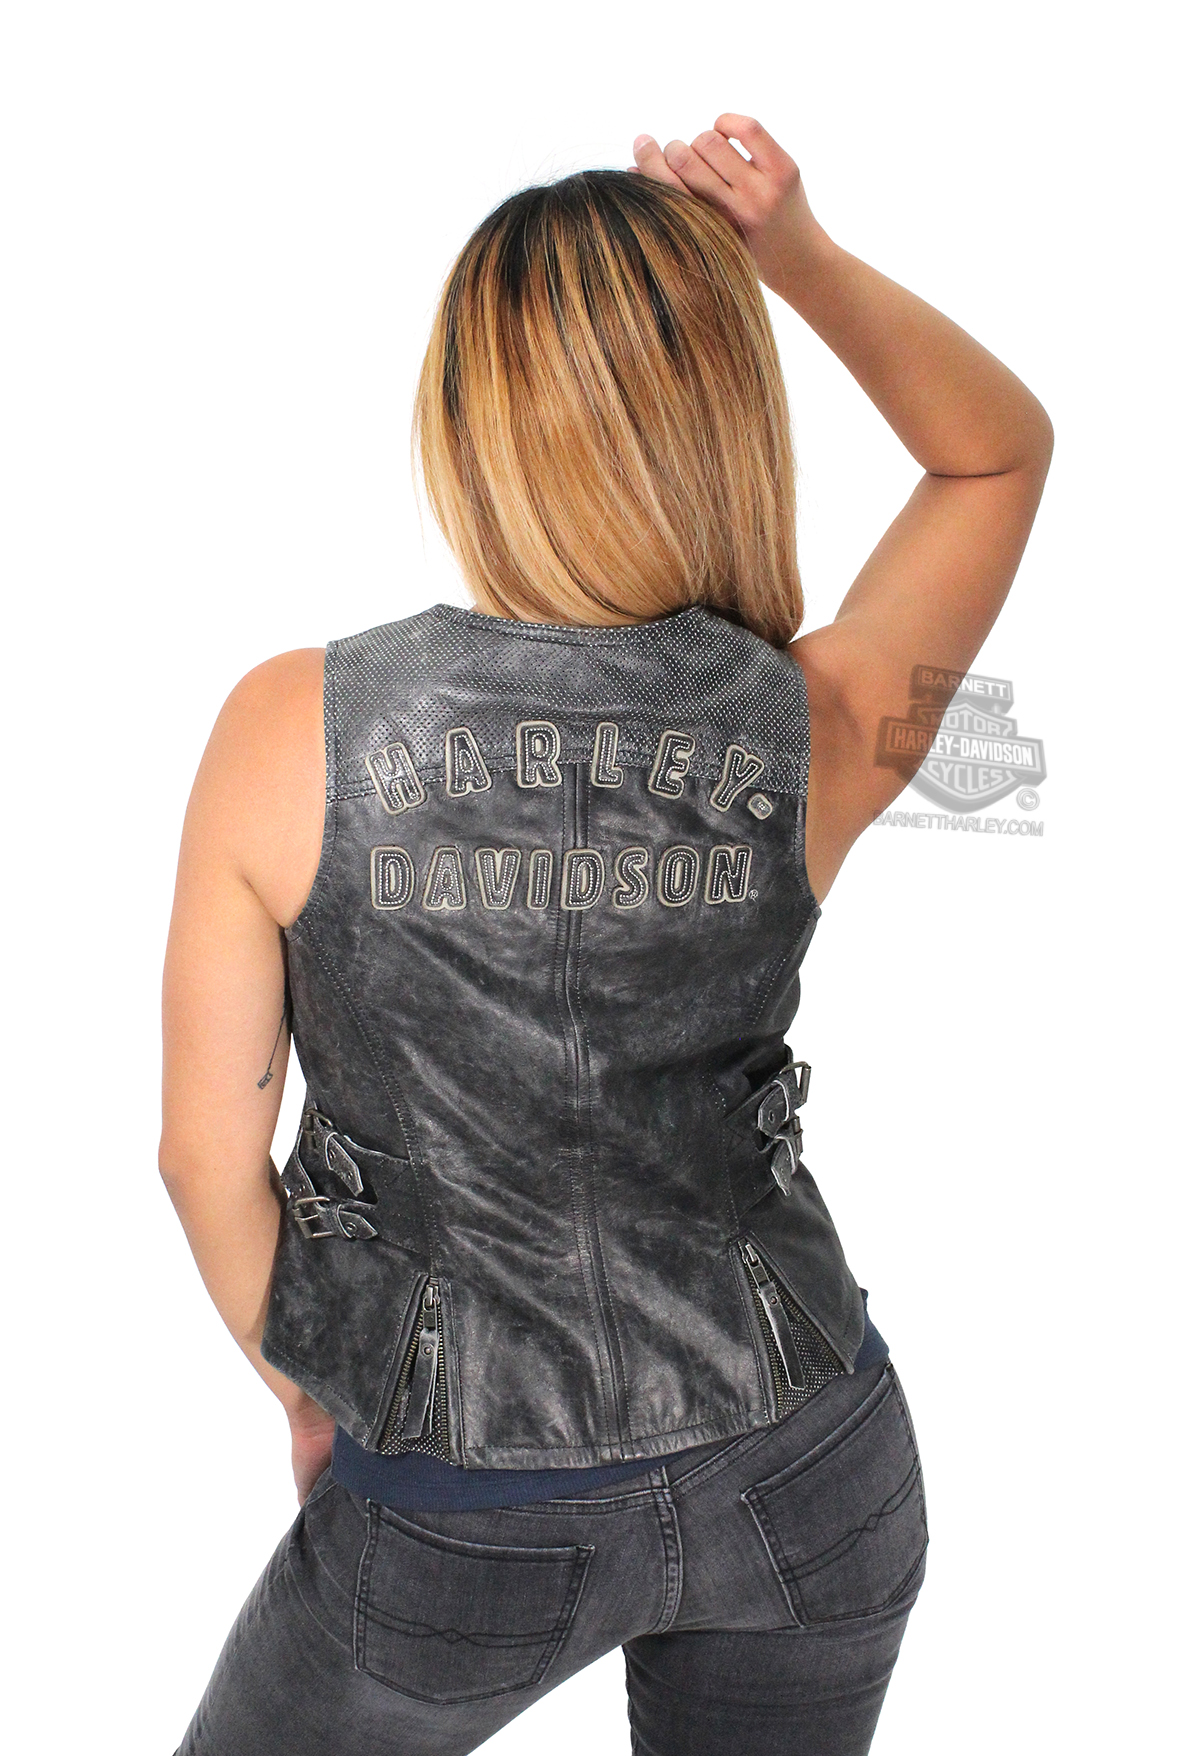 Harley davidson womens dust rider distressed two way zipper front image property of barnett harley davidson kristyandbryce Image collections